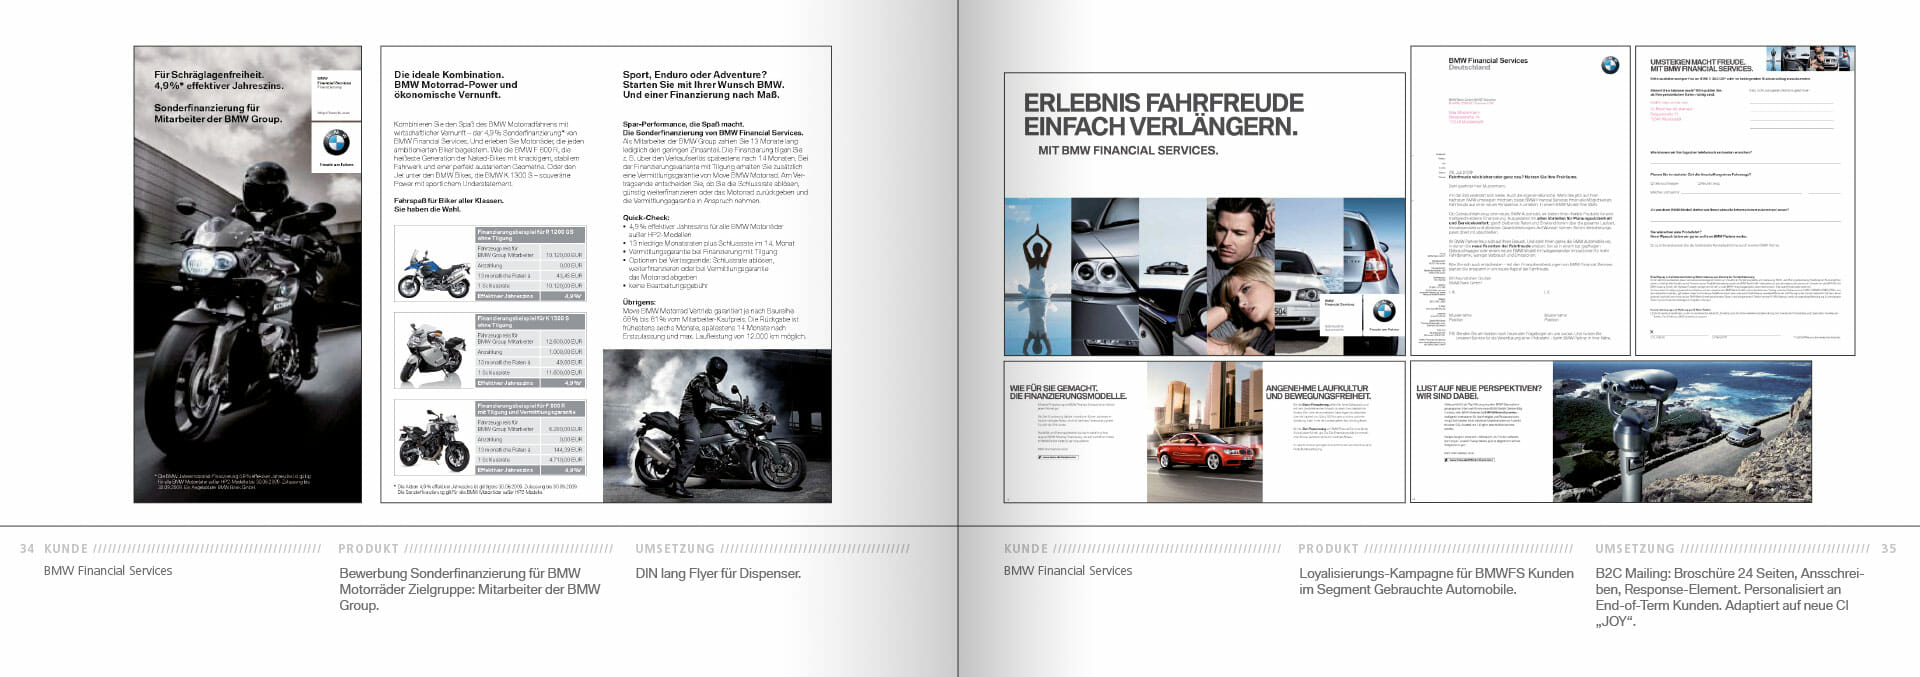 BMW Group Works 2001-2009 Booklet 34-35